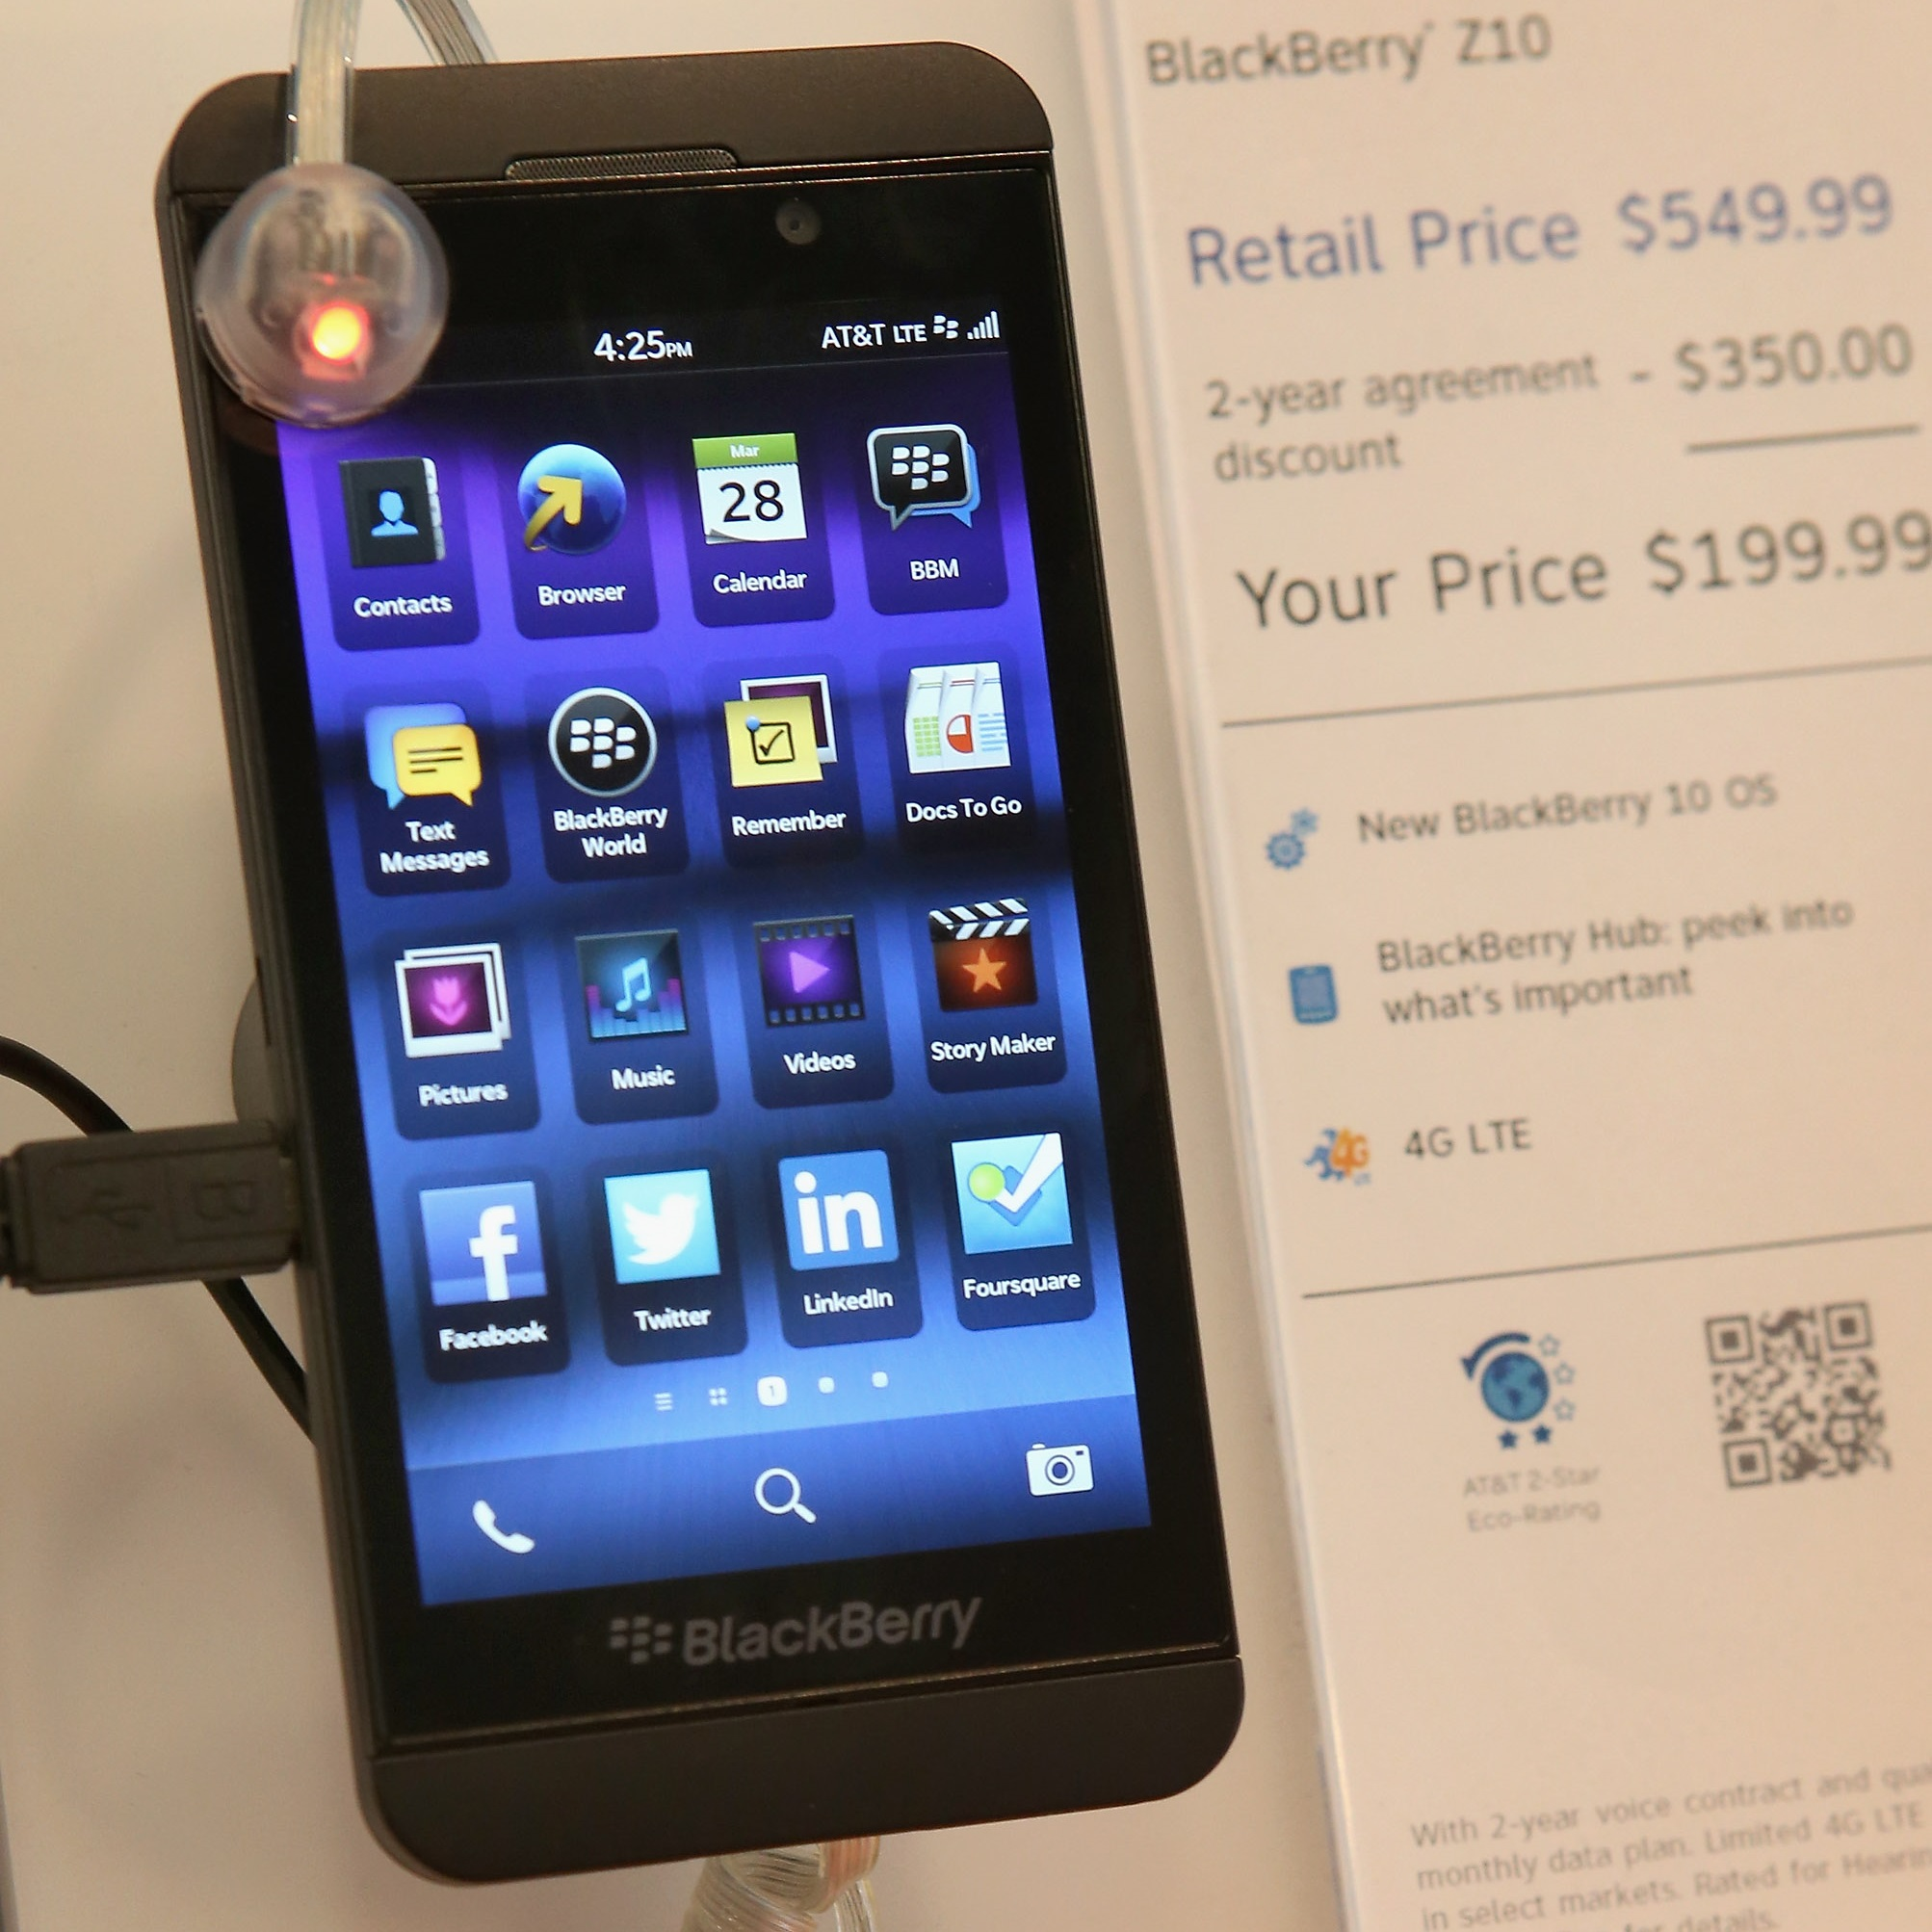 BlackBerry Gains NATO Security Approval